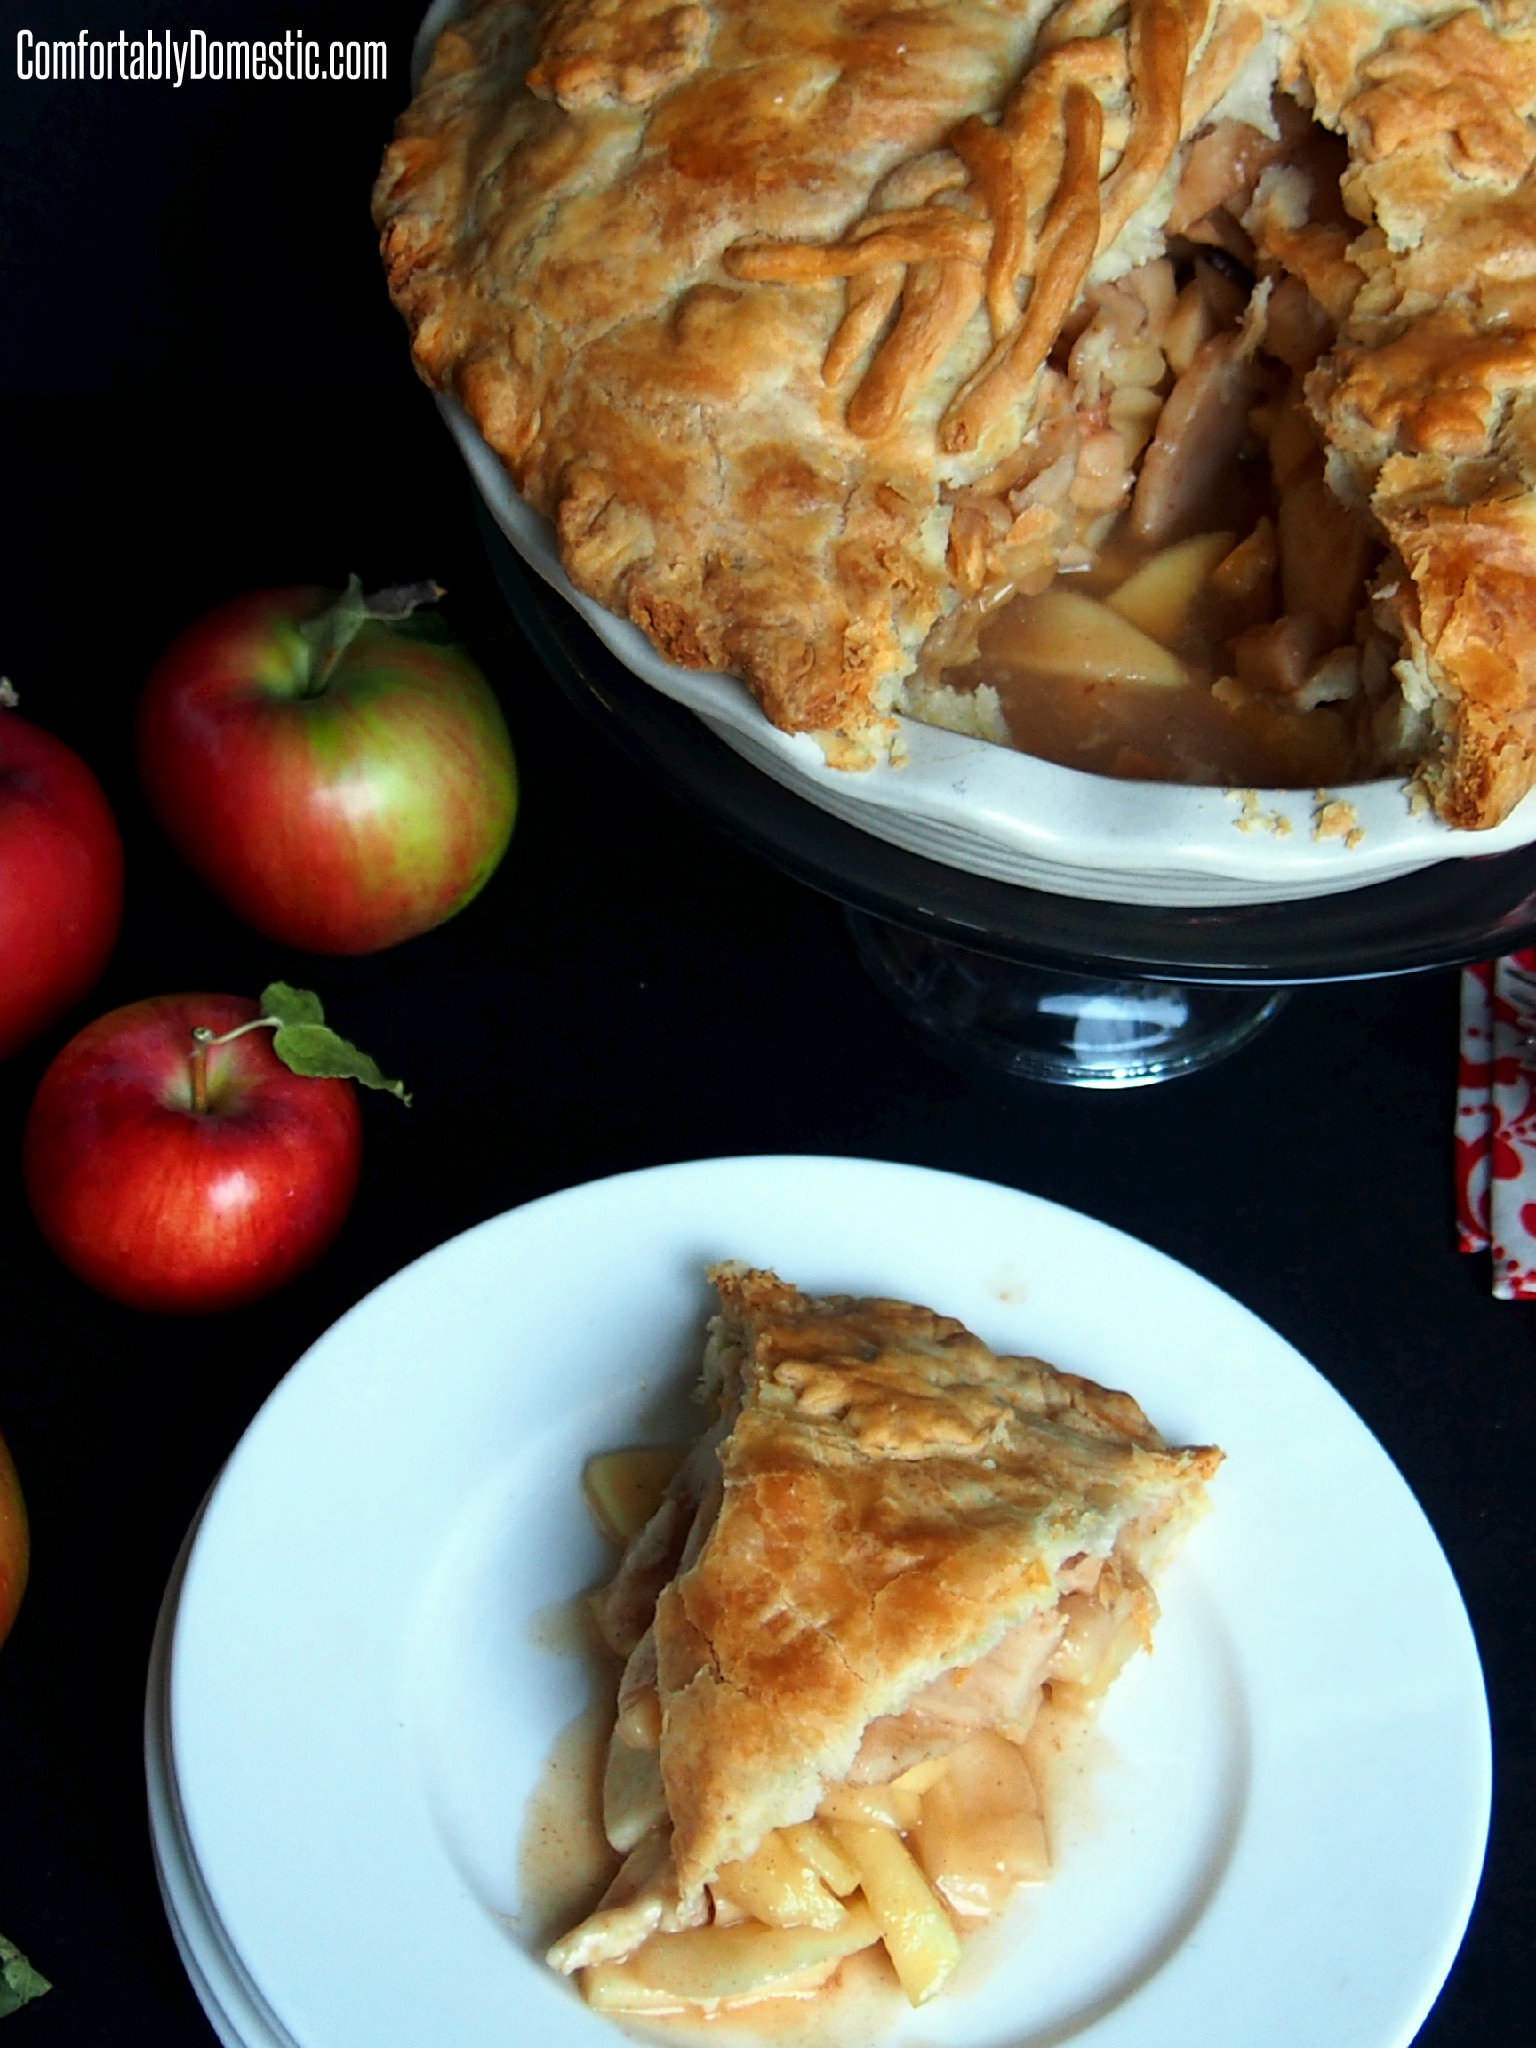 Mile high apple pie is a deep dish take on an American Classic Apple Pie--stuffed with a variety of tart apples, bound together in a caramel-like filling.| ComfortablyDomestic.com